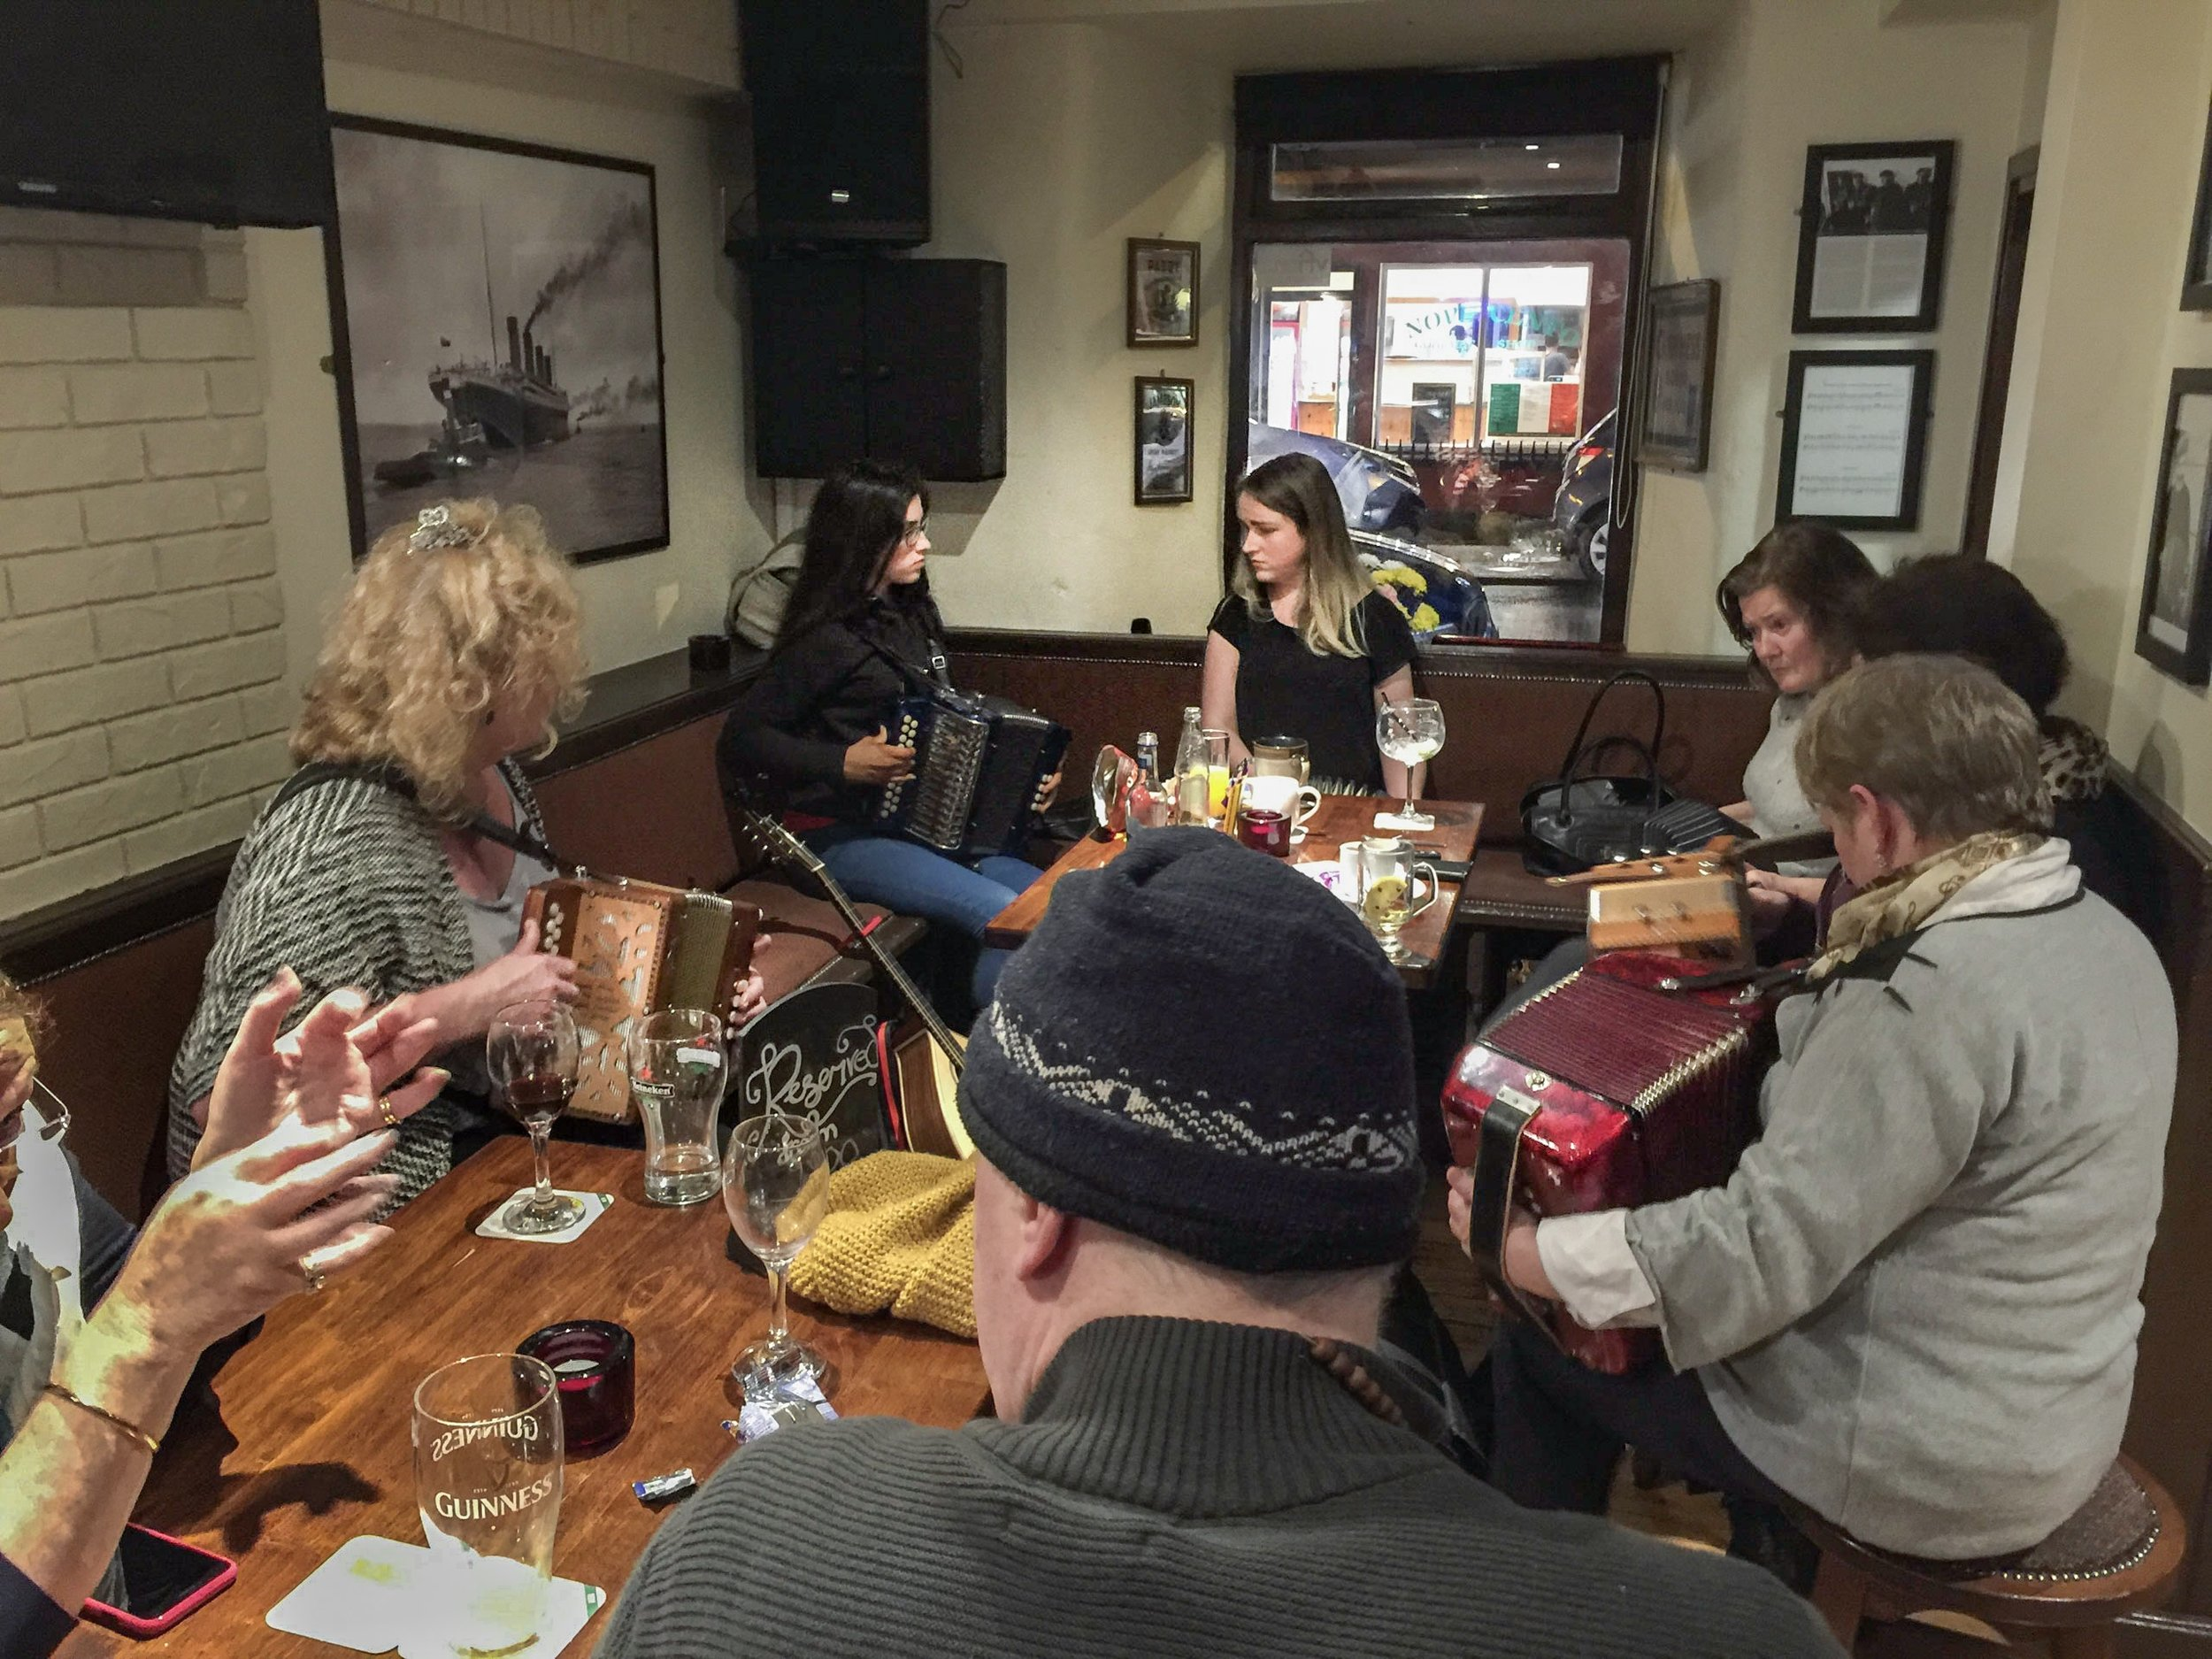 My siblings and I found an accordion group playing their music in an Irish pub, playing for themselves for the pure enjoyment of it. An evening like this won't be in any guidebooks